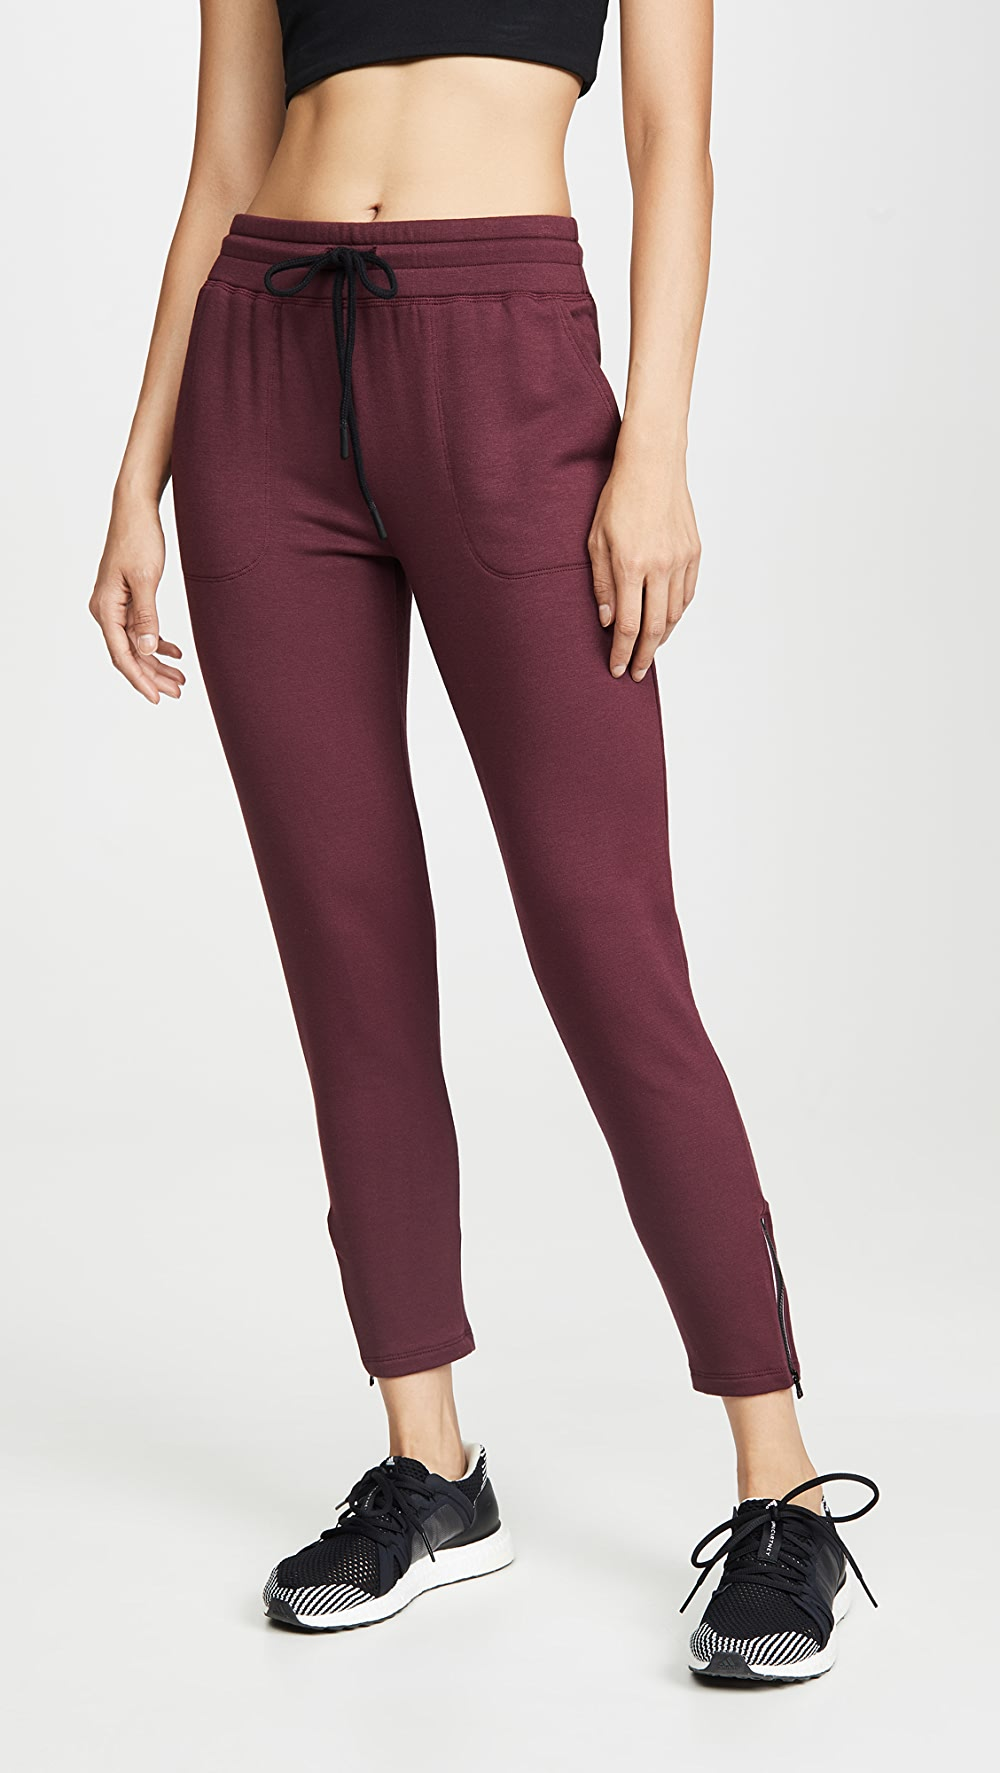 Careful Beyond Yoga - By Request Midi Sweatpants Fixing Prices According To Quality Of Products